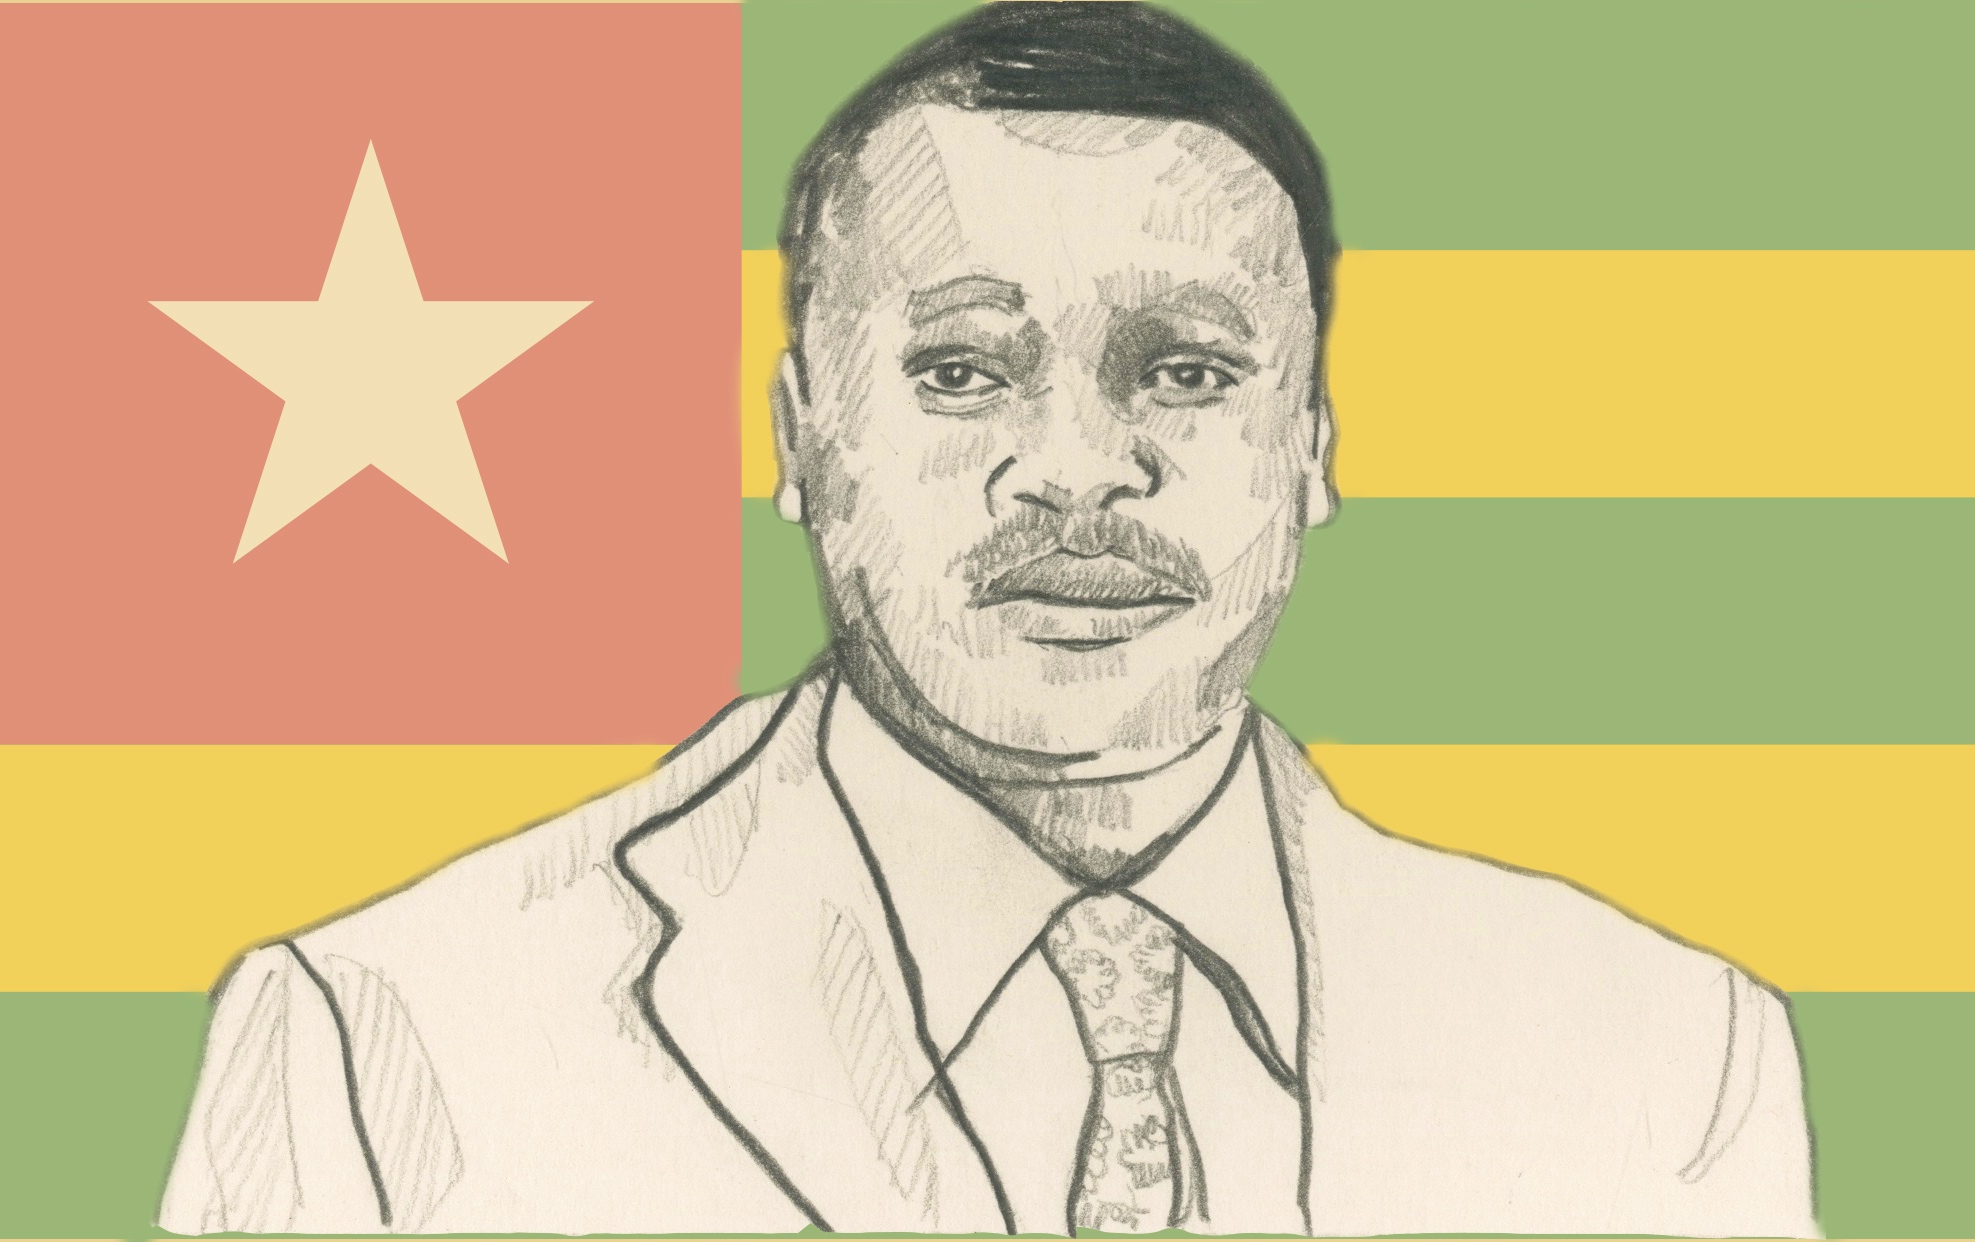 17/04/15 Togo's main opposition party has rejected official presidential election results declaring victory for incumbent Faure Gnassingbe with 58.75 percent of the vote, and instead claimed a win for its candidate Jean-Pierre Fabre. Fabre had hoped to oust Gnassingbe, who has been in power since 2005 and was seeking a third term of office, as well as bringing an end to nearly 50 years of rule by the president's family.